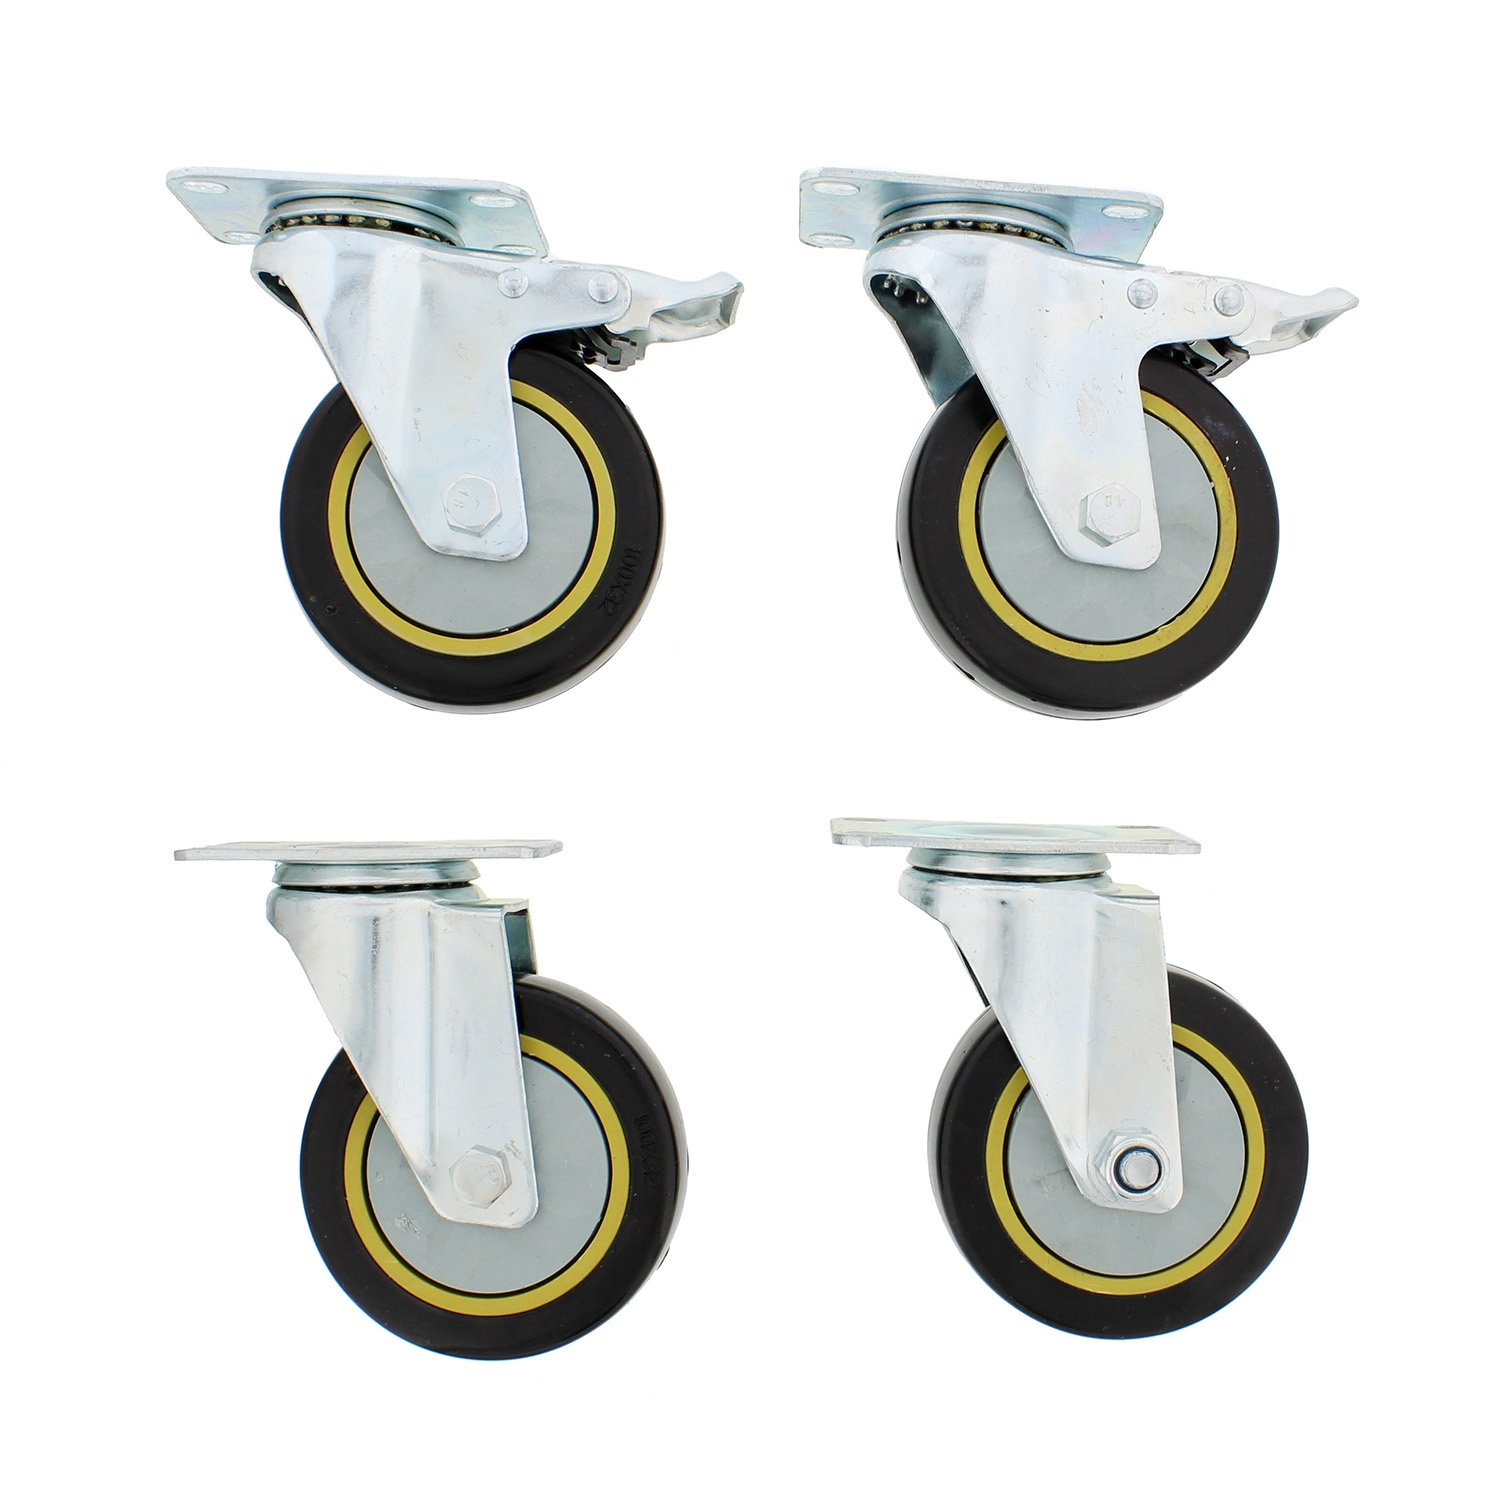 "ABN Caster Wheel 4"" Inches Set of 4 – Heavy Duty Swivel Stem Locking Casters with Hard Rubber Wheels for Furniture"